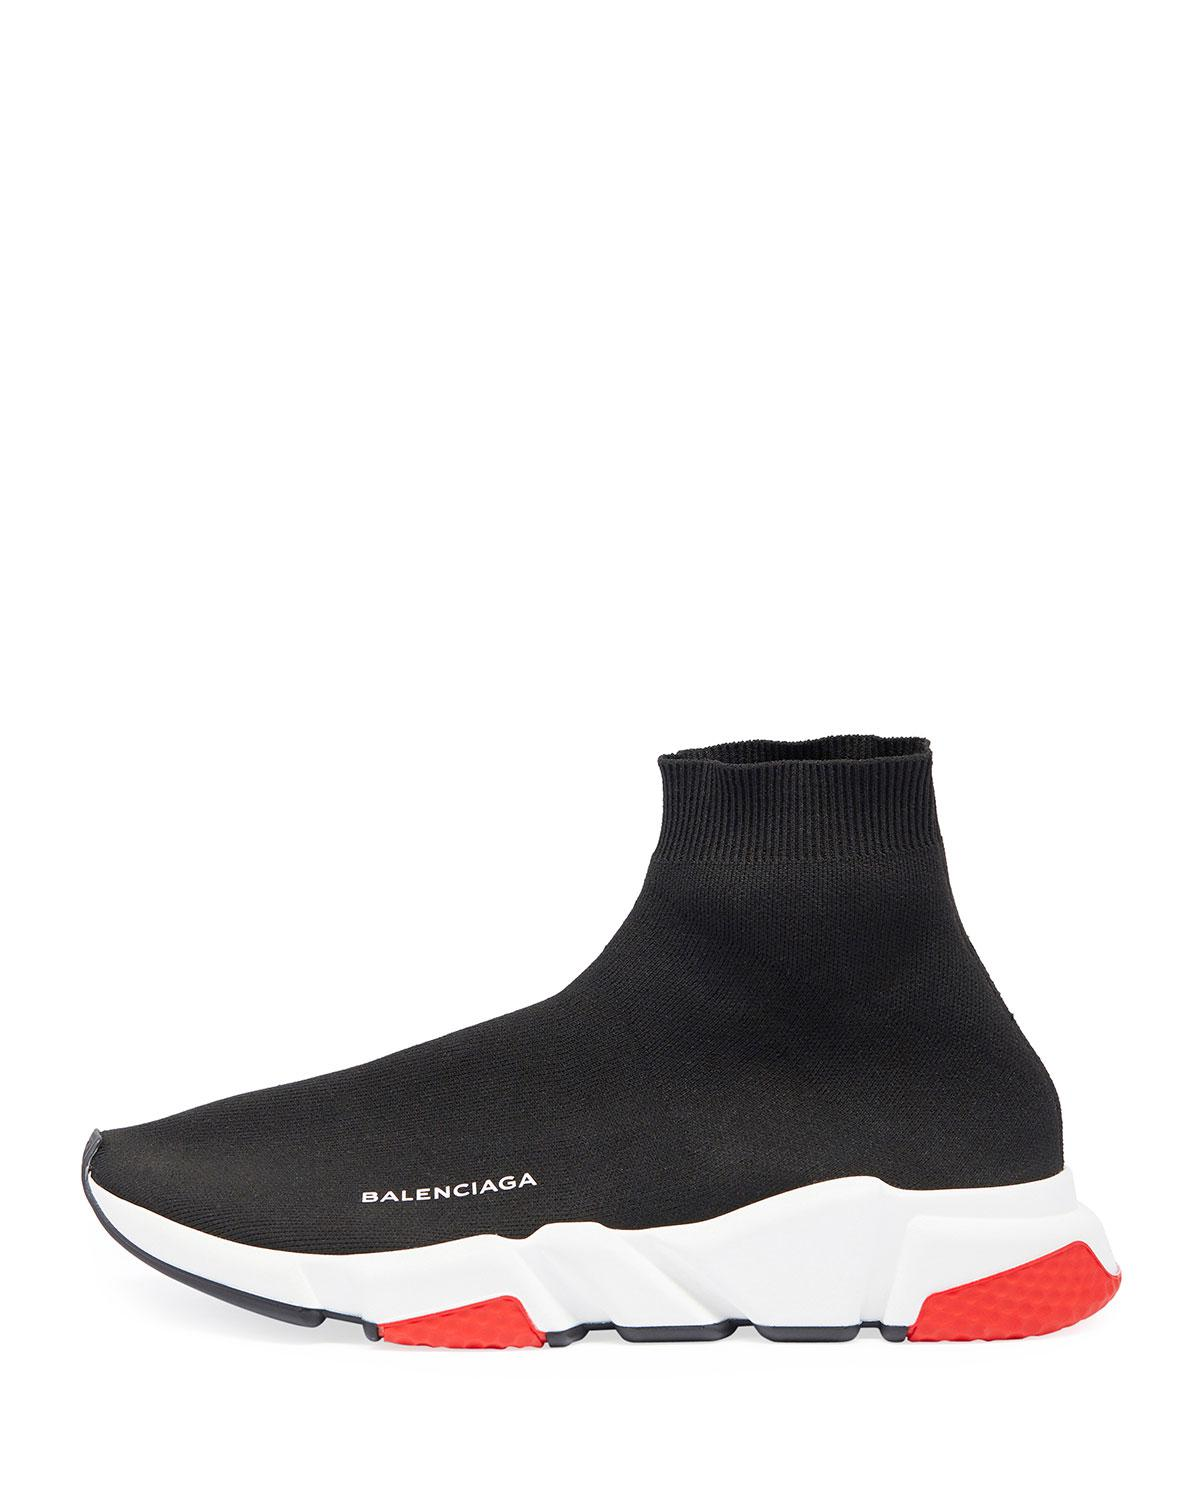 85758cb89b80 Lyst - Balenciaga Men s Speed Mid-top Trainer Sock Sneakers in Black for  Men - Save 4%